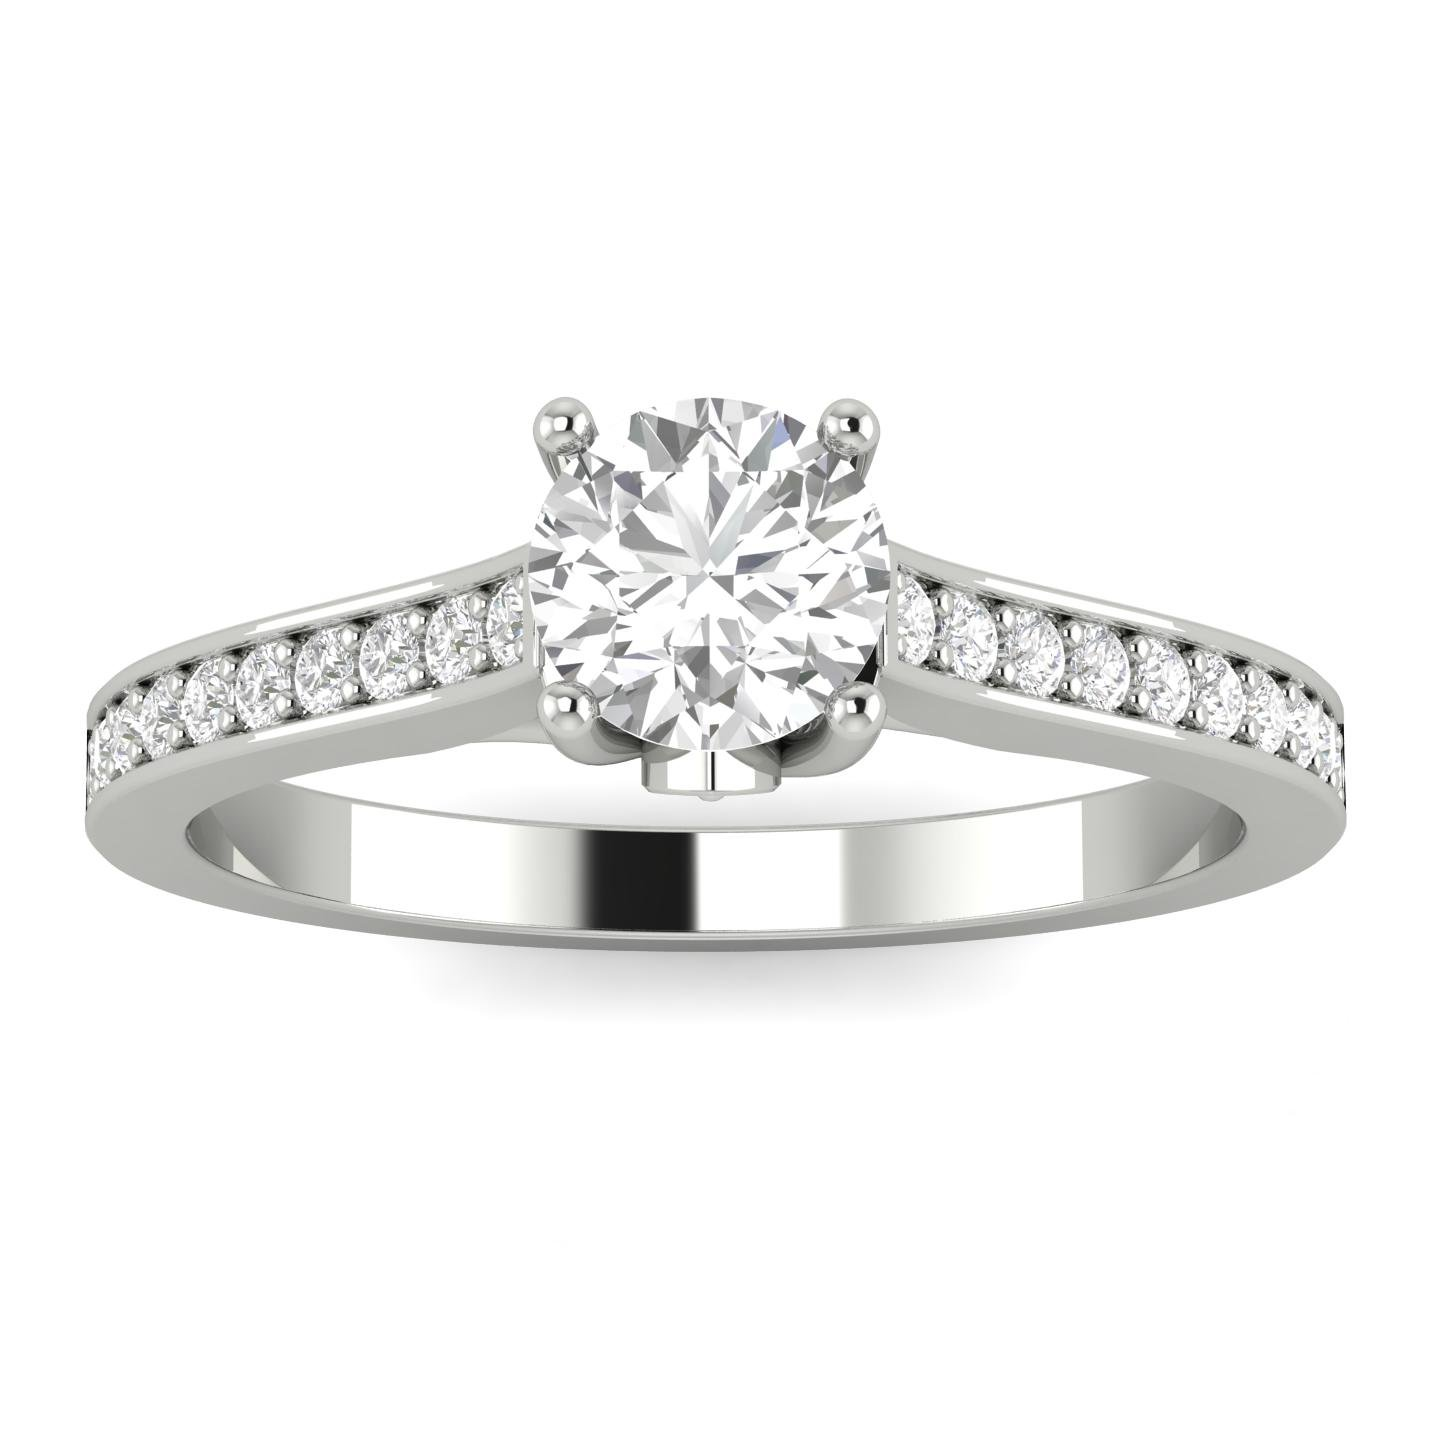 1/2ctw Diamond Engagement Ring in 10k White Gold by Sk Jewel,Inc